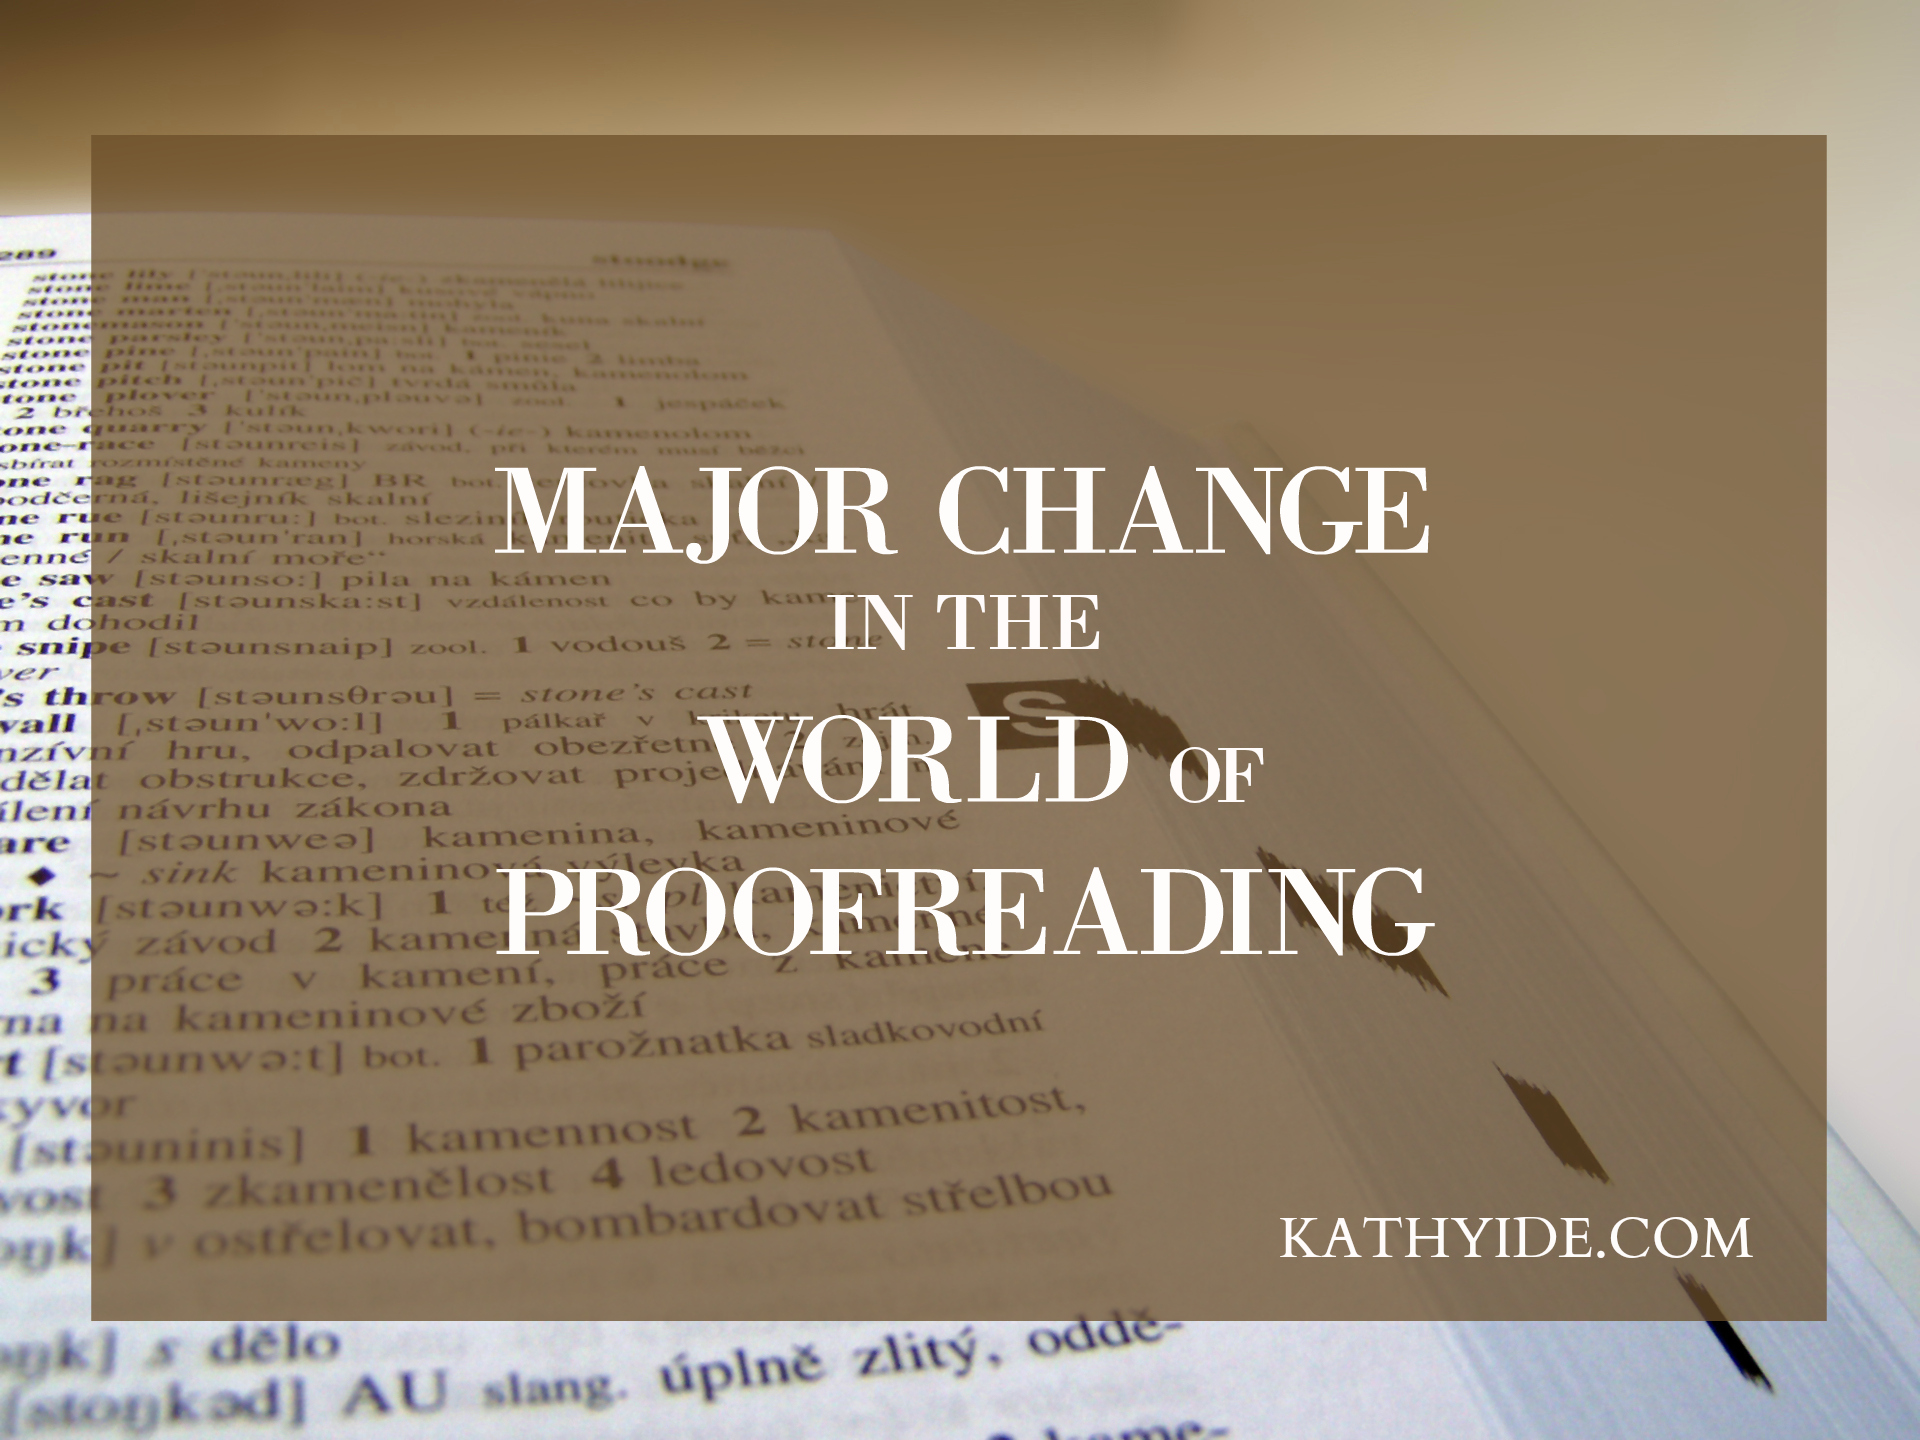 MAJOR CHANGE IN THE WORLD OF PROOFREADING